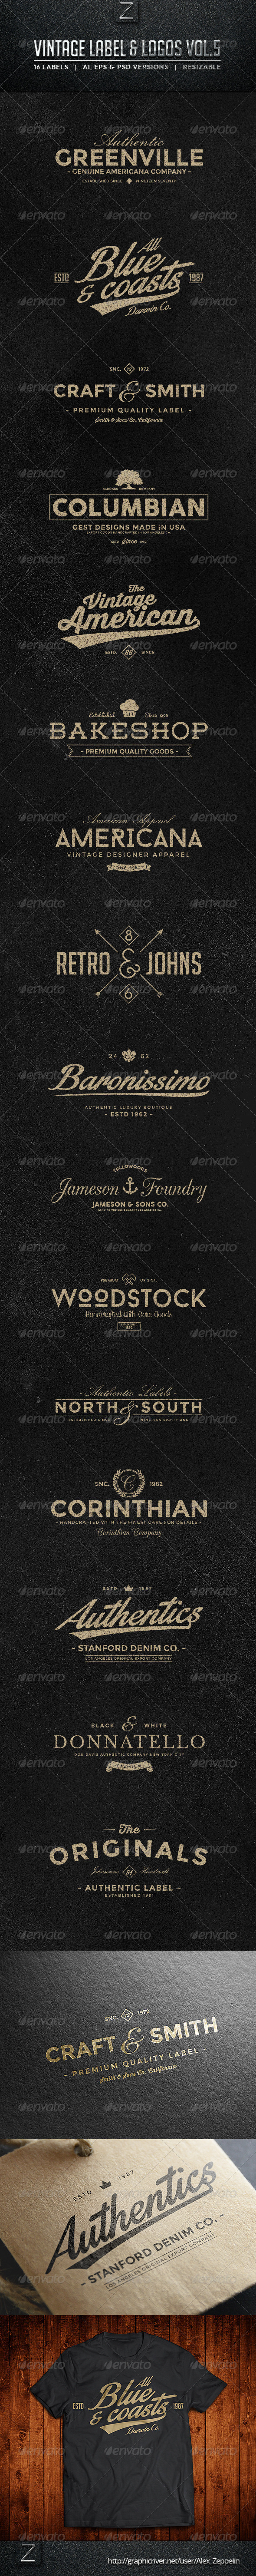 GraphicRiver Vintage Labels & Logos Vol.5 8659229